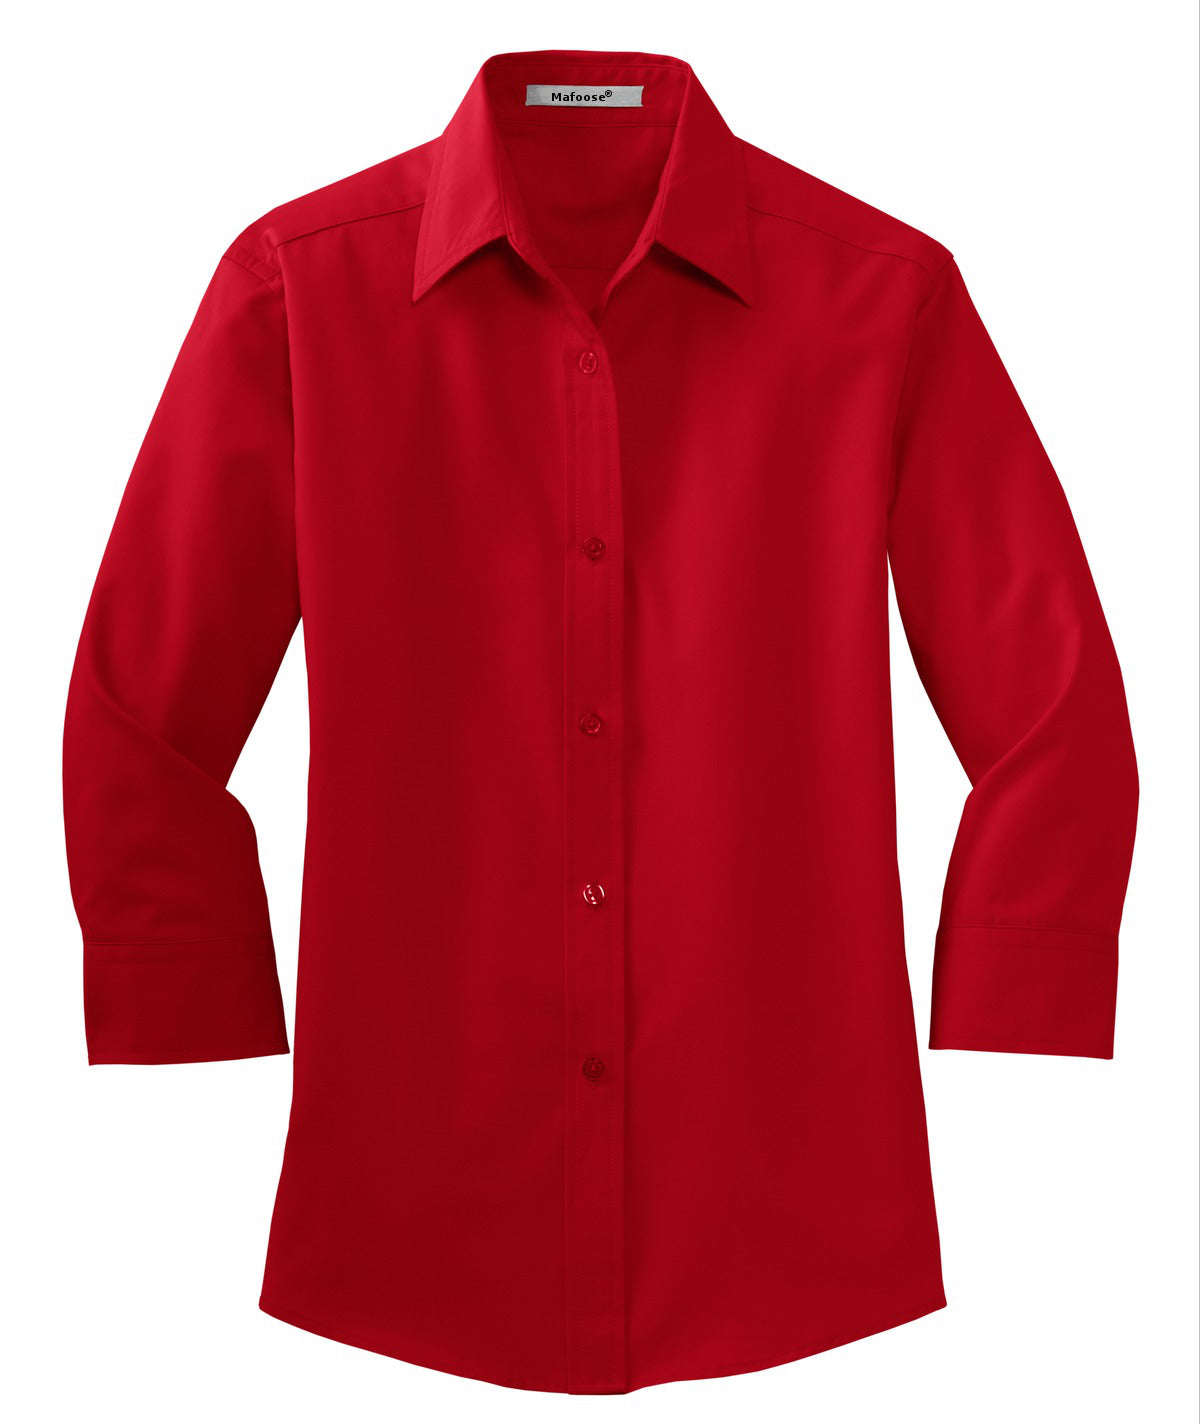 Mafoose Women's 3/4-Sleeve Traditional Easy Care Shirt Red-Front